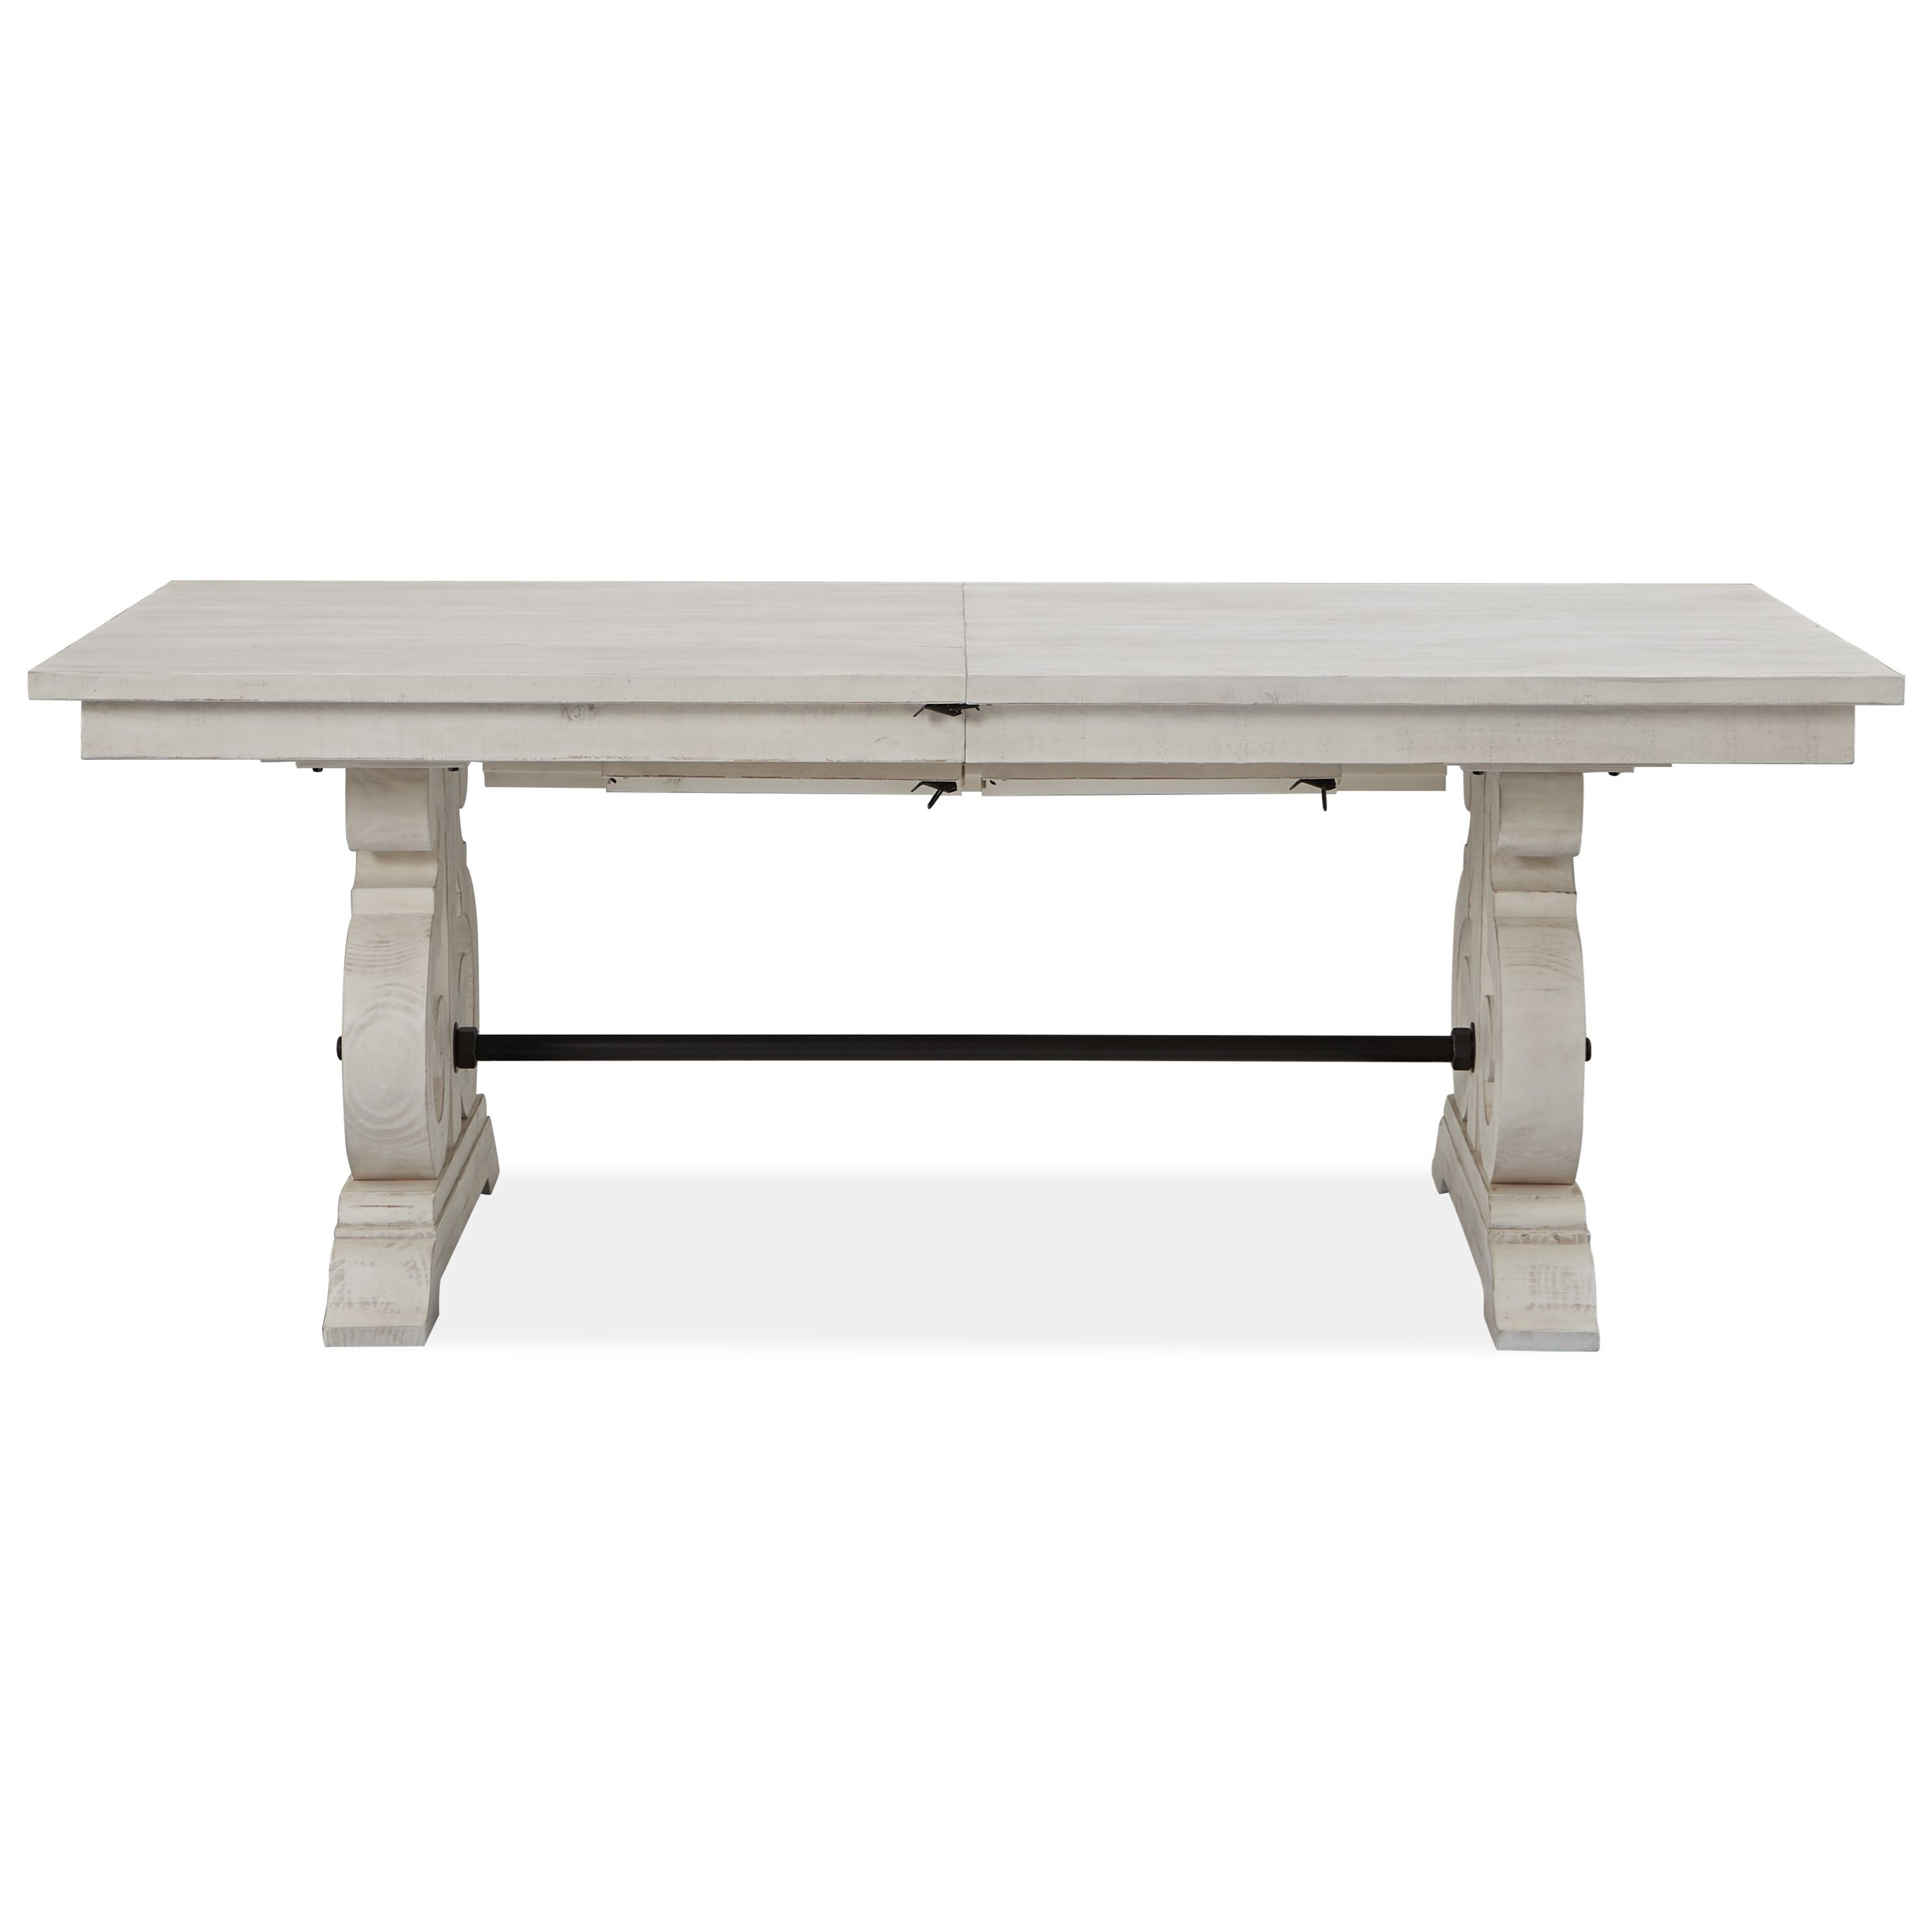 Bronwyn Rectangular Dining Table by Magnussen Home at Stoney Creek Furniture